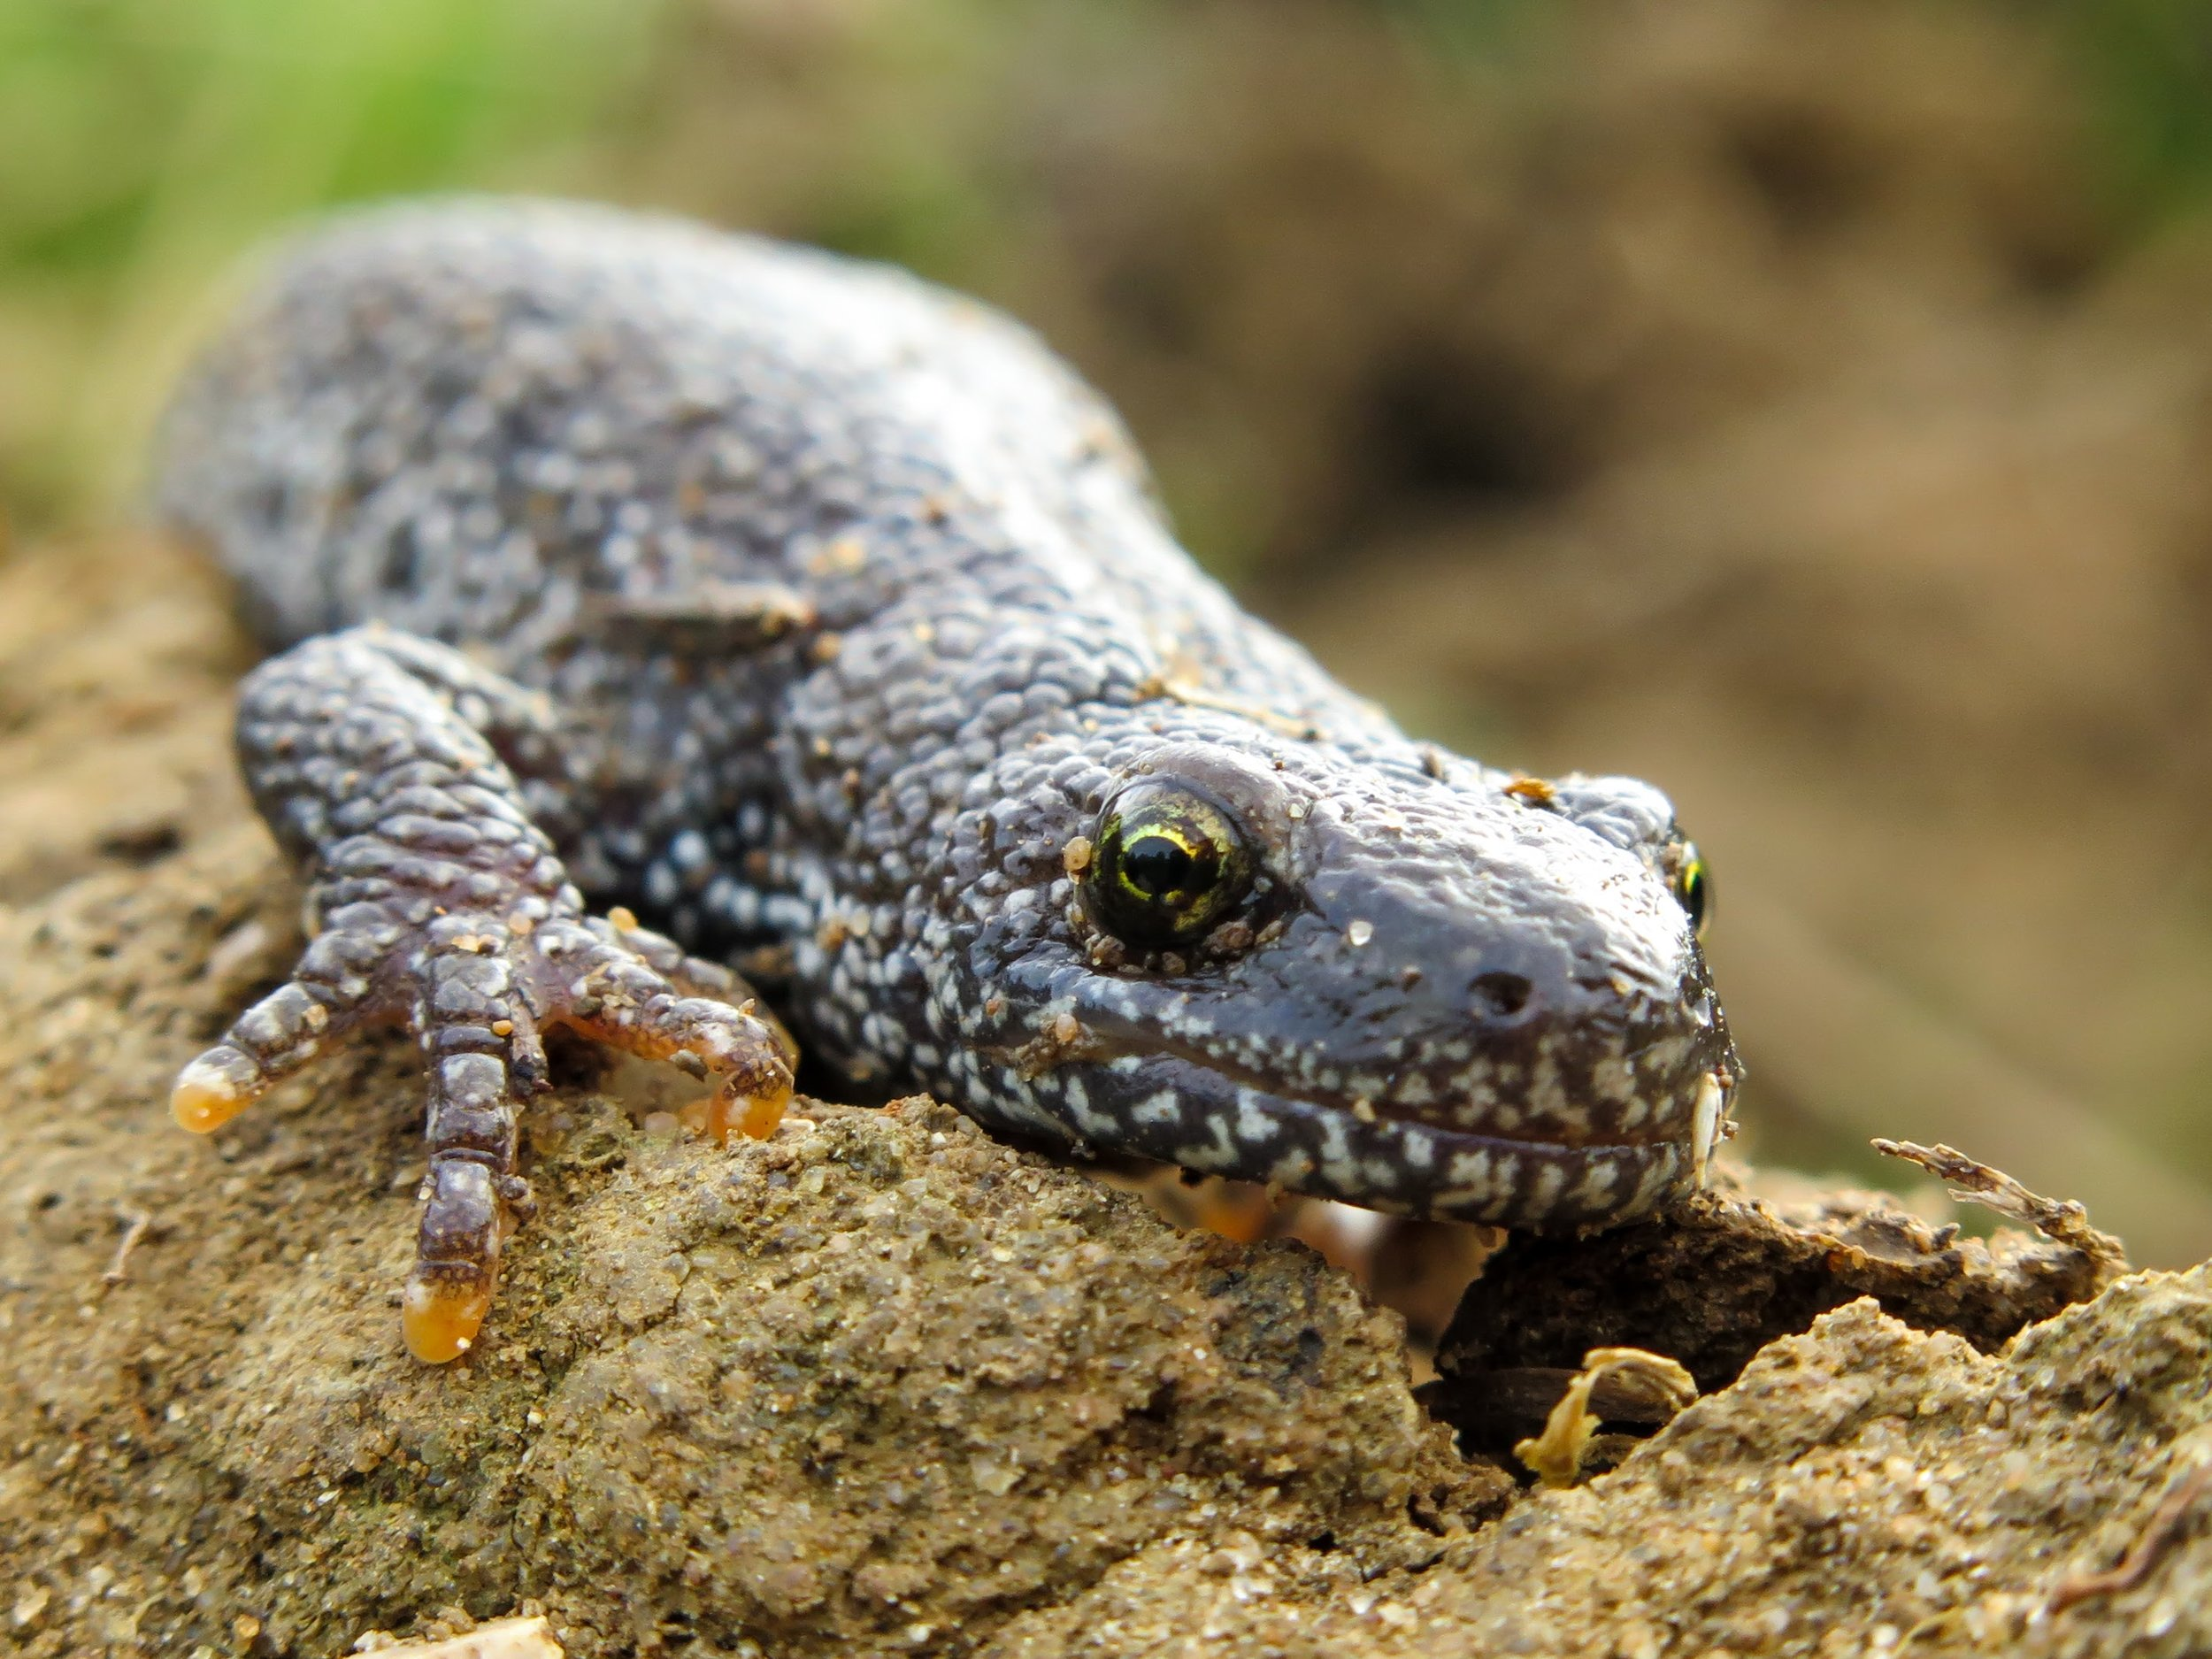 A great crested newt which was identified by one of our team during surveys in 2016.